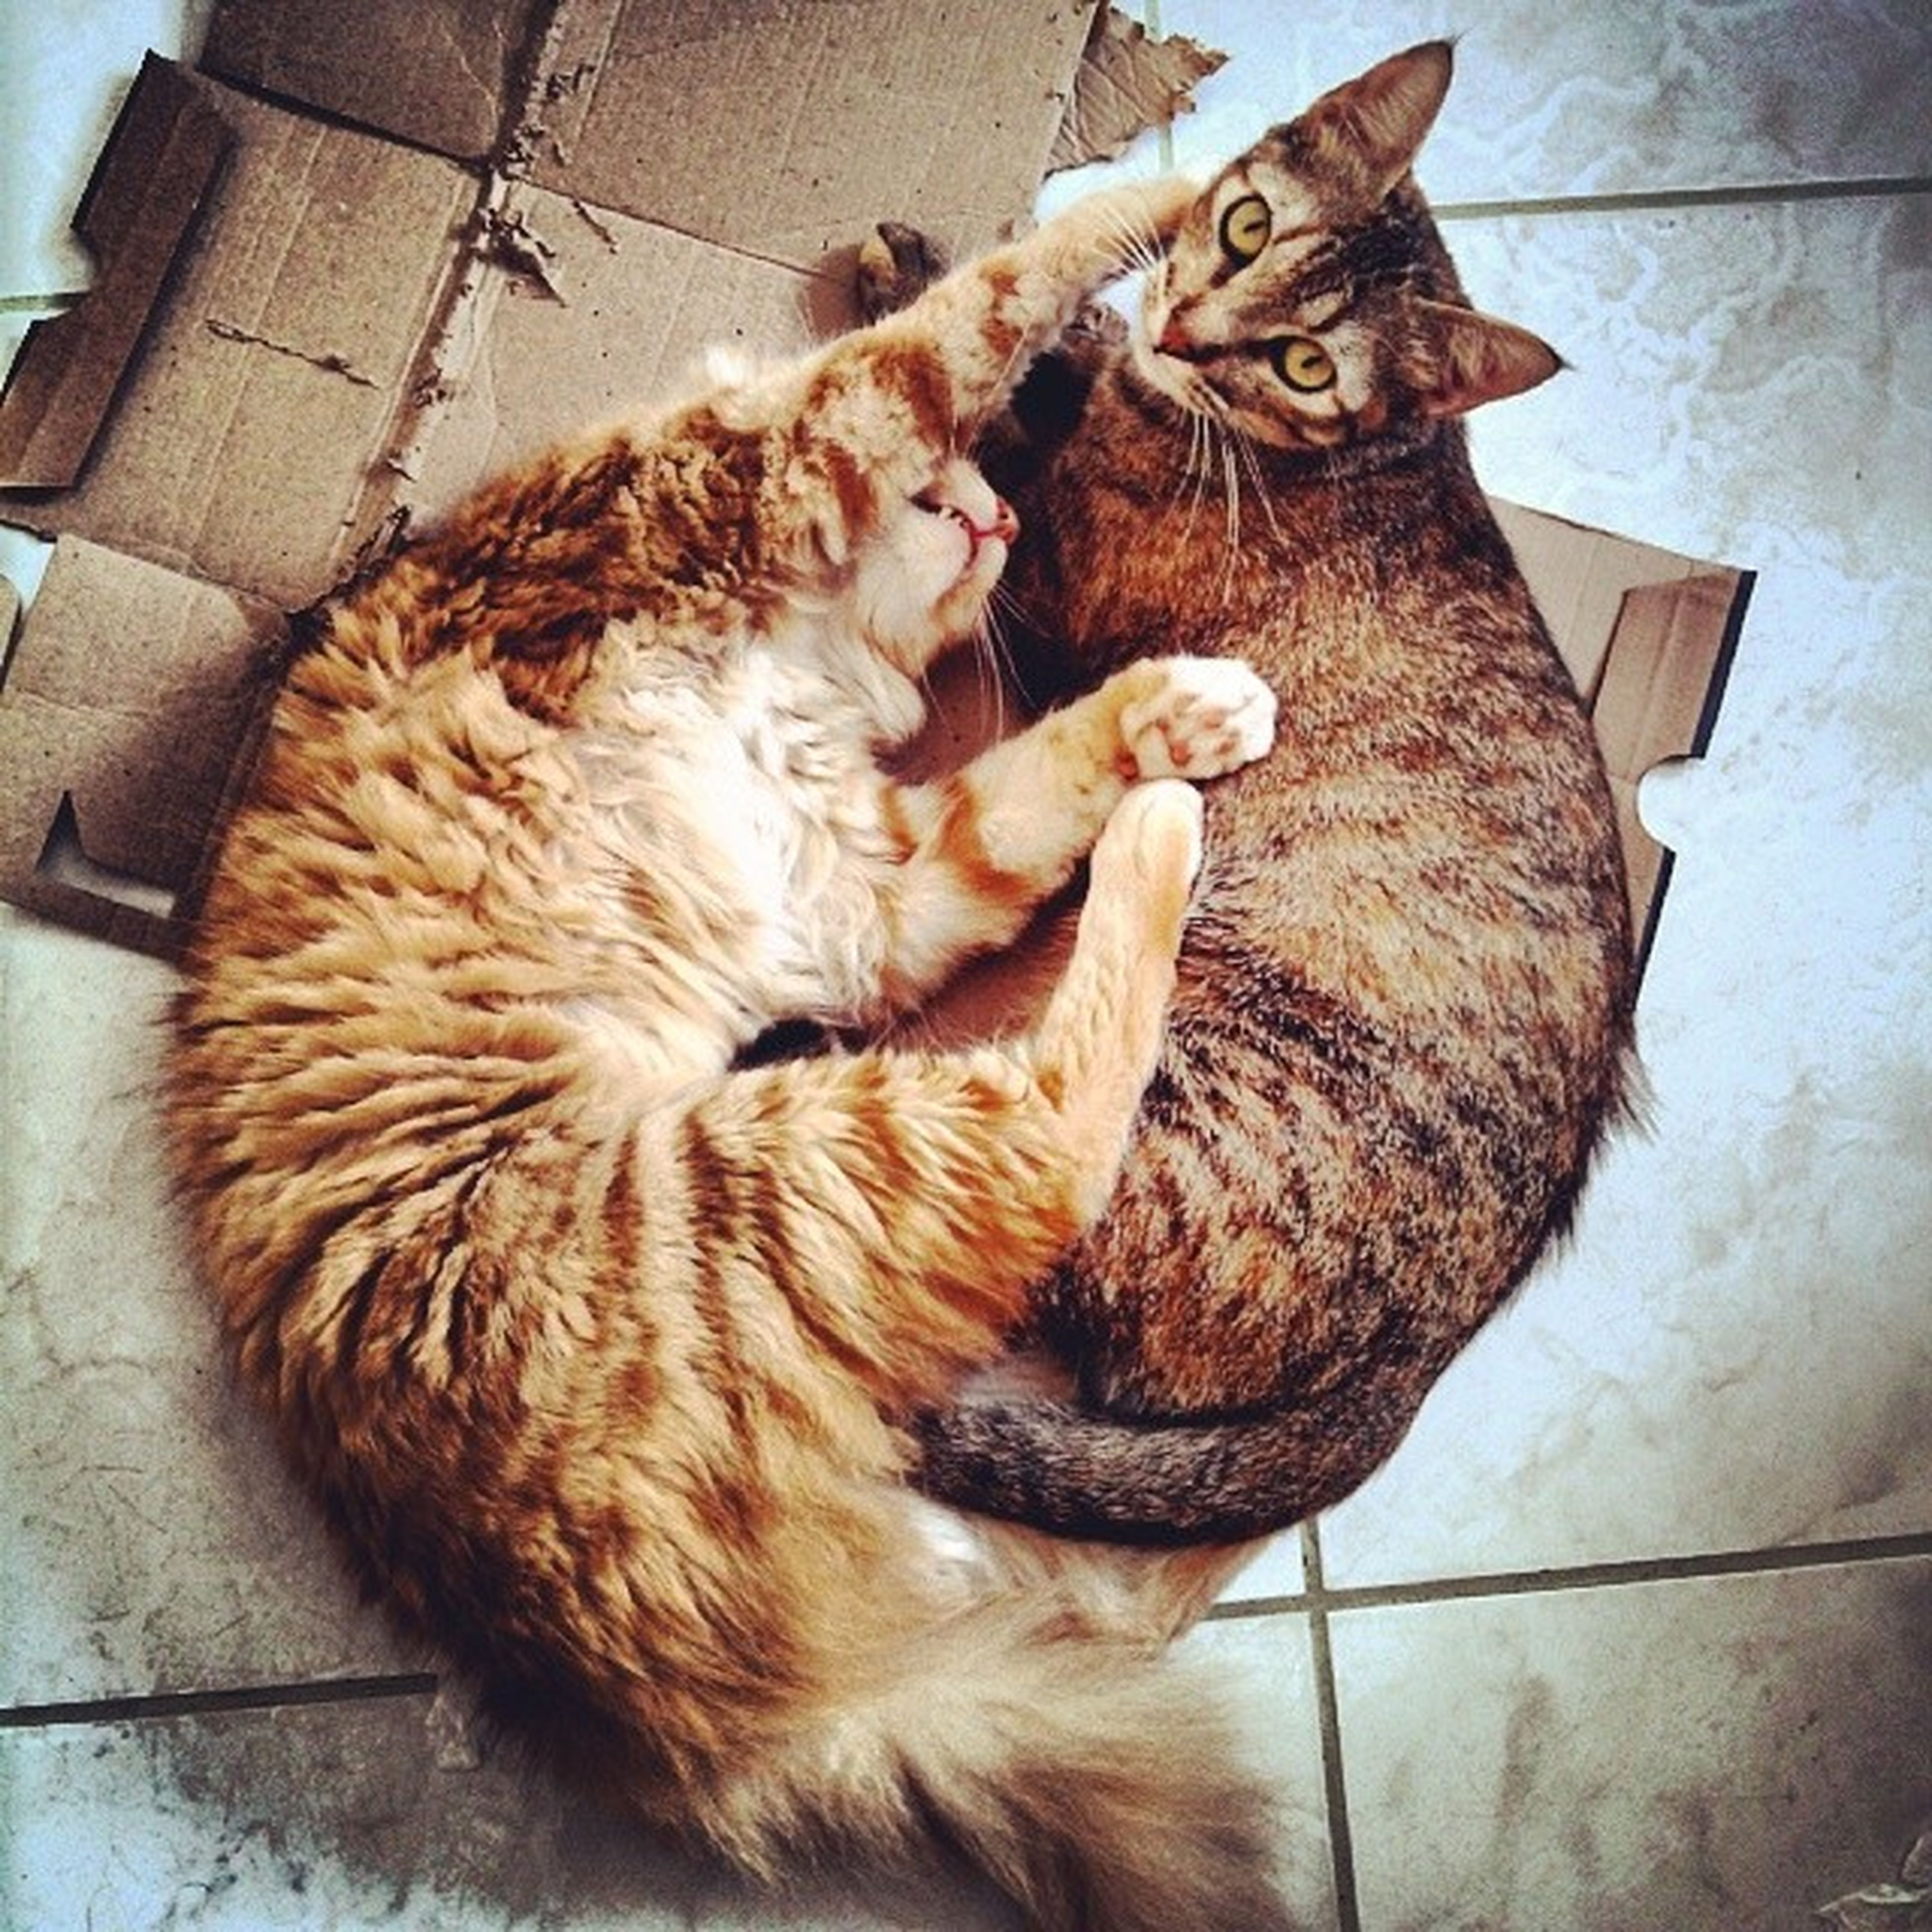 domestic animals, animal themes, mammal, domestic cat, pets, cat, one animal, feline, relaxation, sleeping, indoors, resting, lying down, eyes closed, whisker, high angle view, two animals, no people, animal, close-up